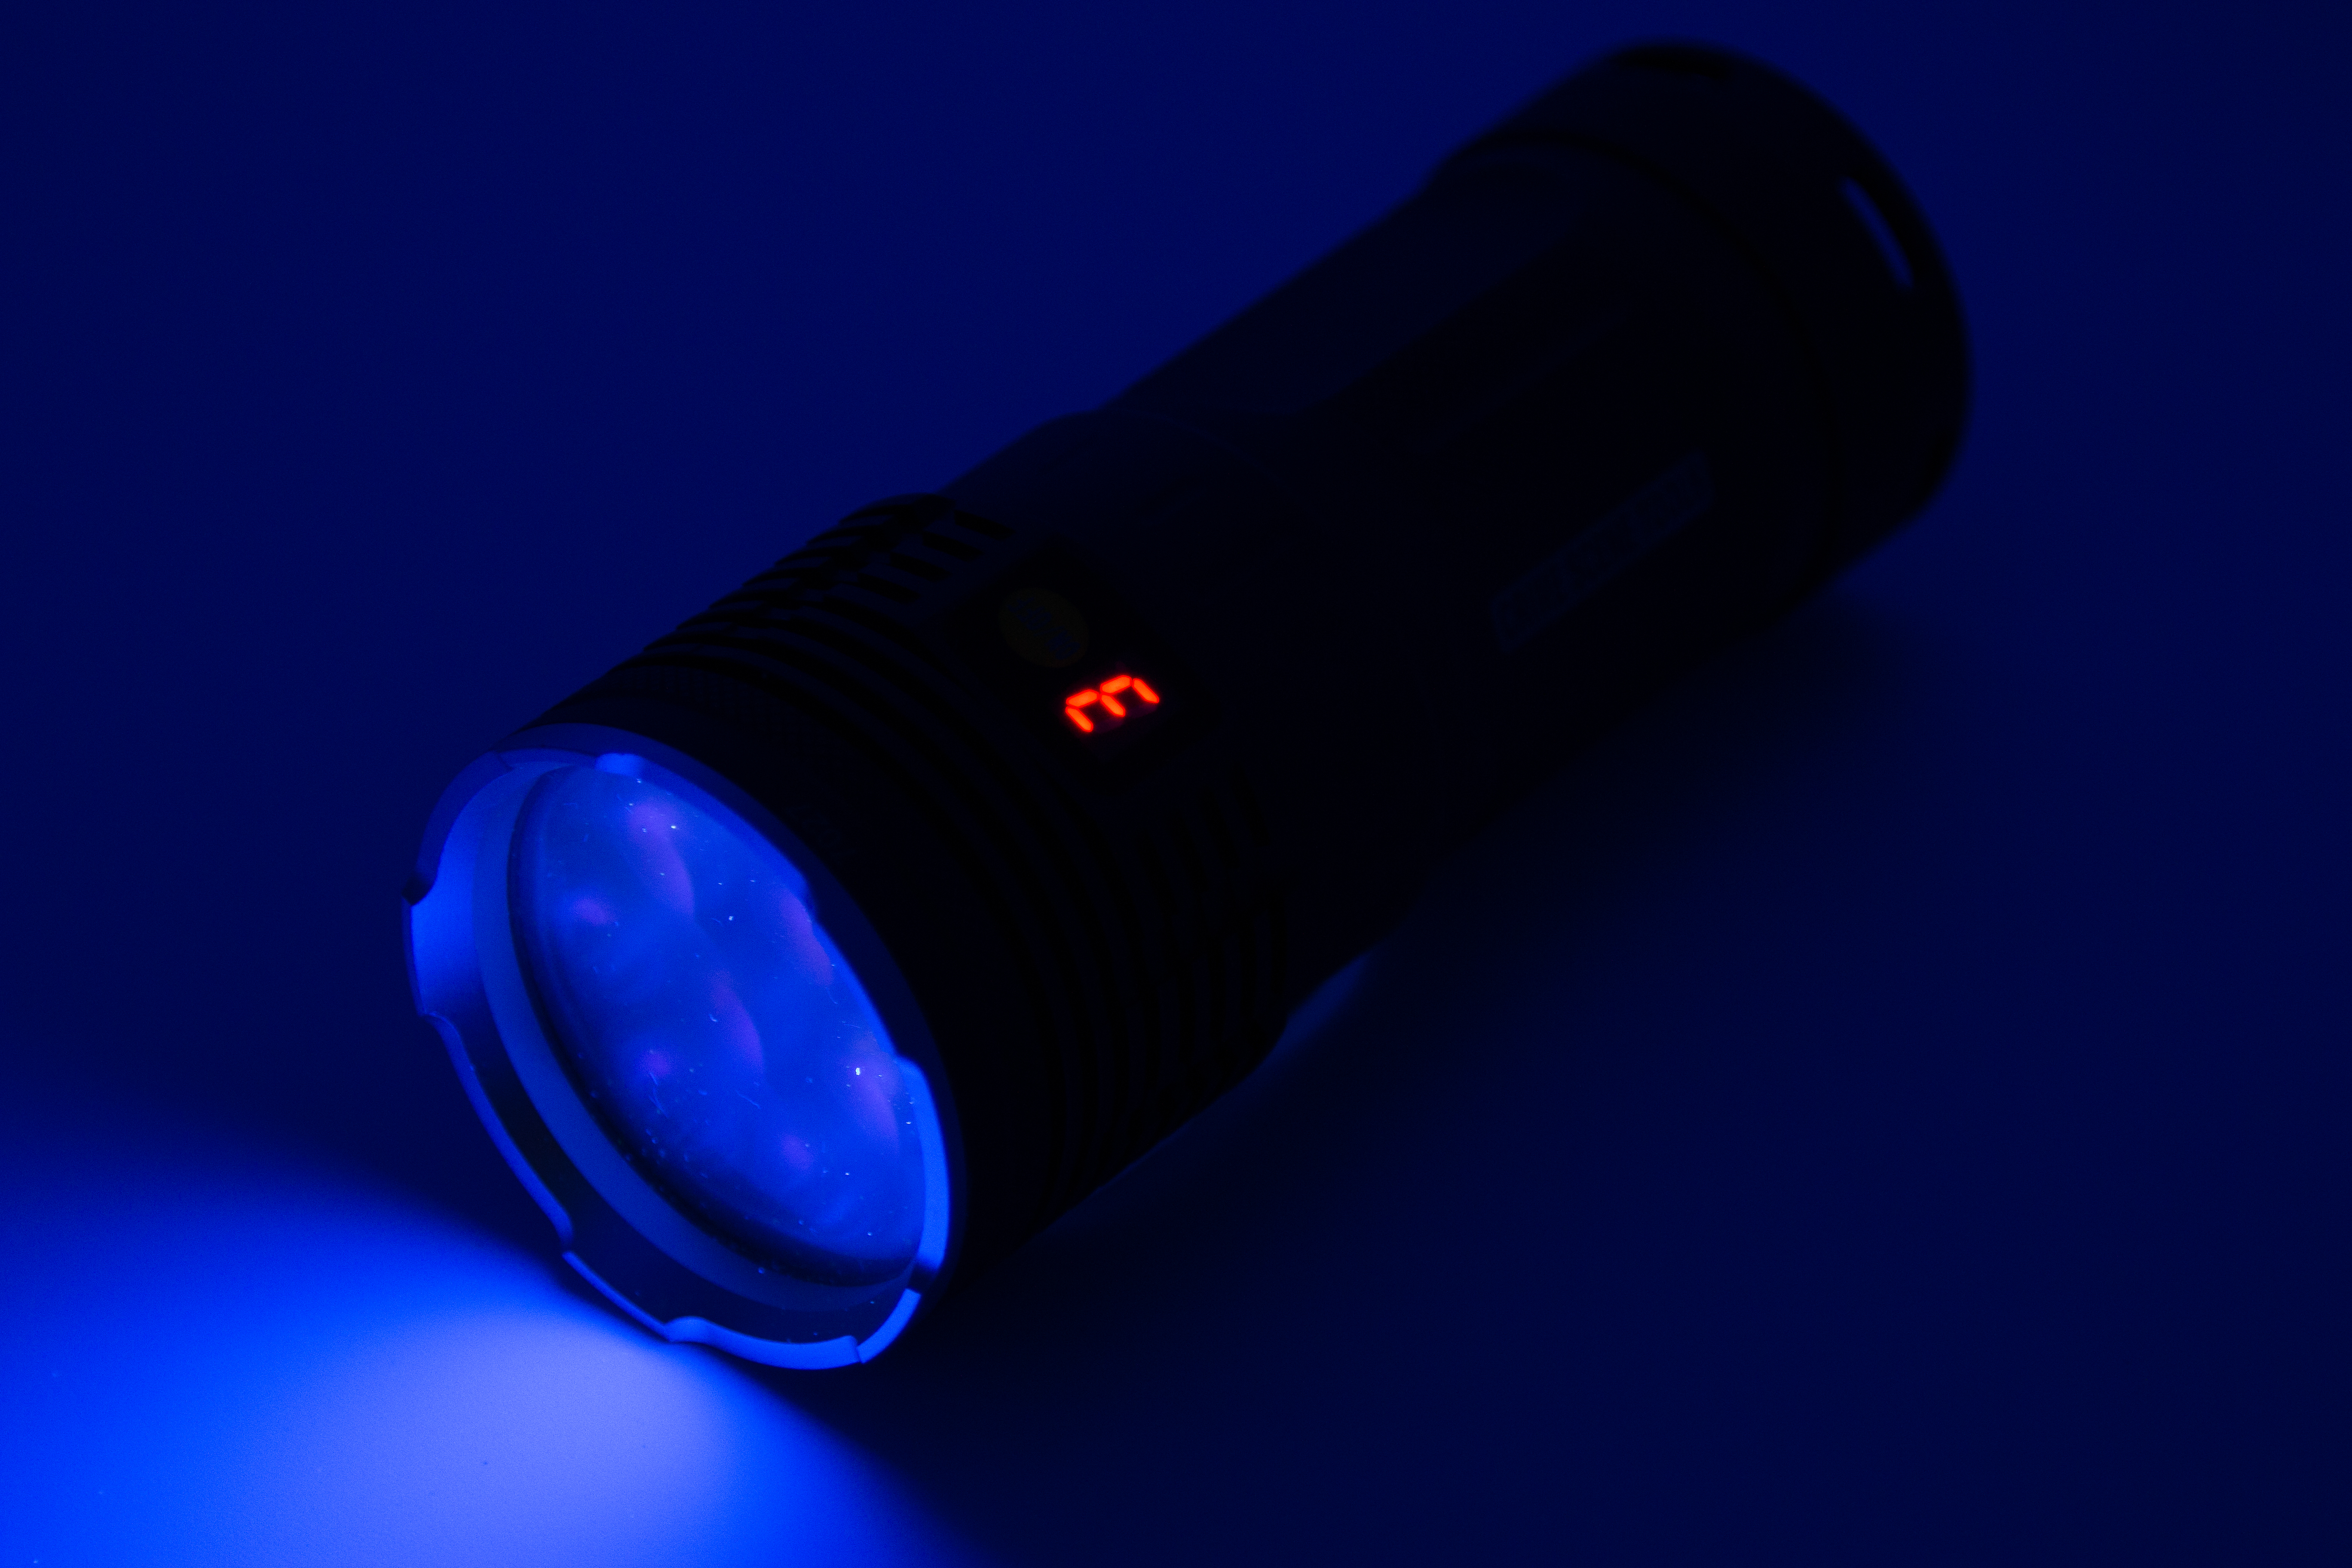 New flashlights with LED mode indicator and side-charging port